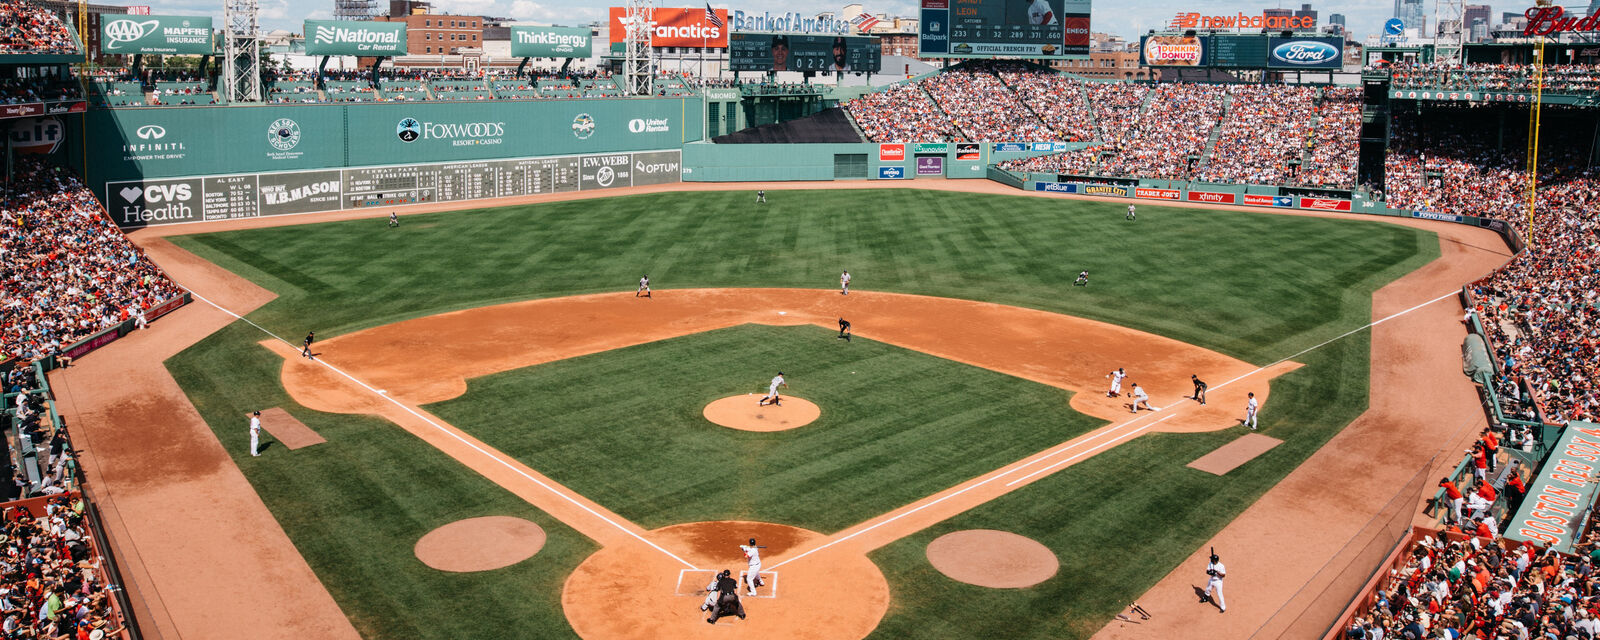 Tampa Bay Rays at Boston Red Sox